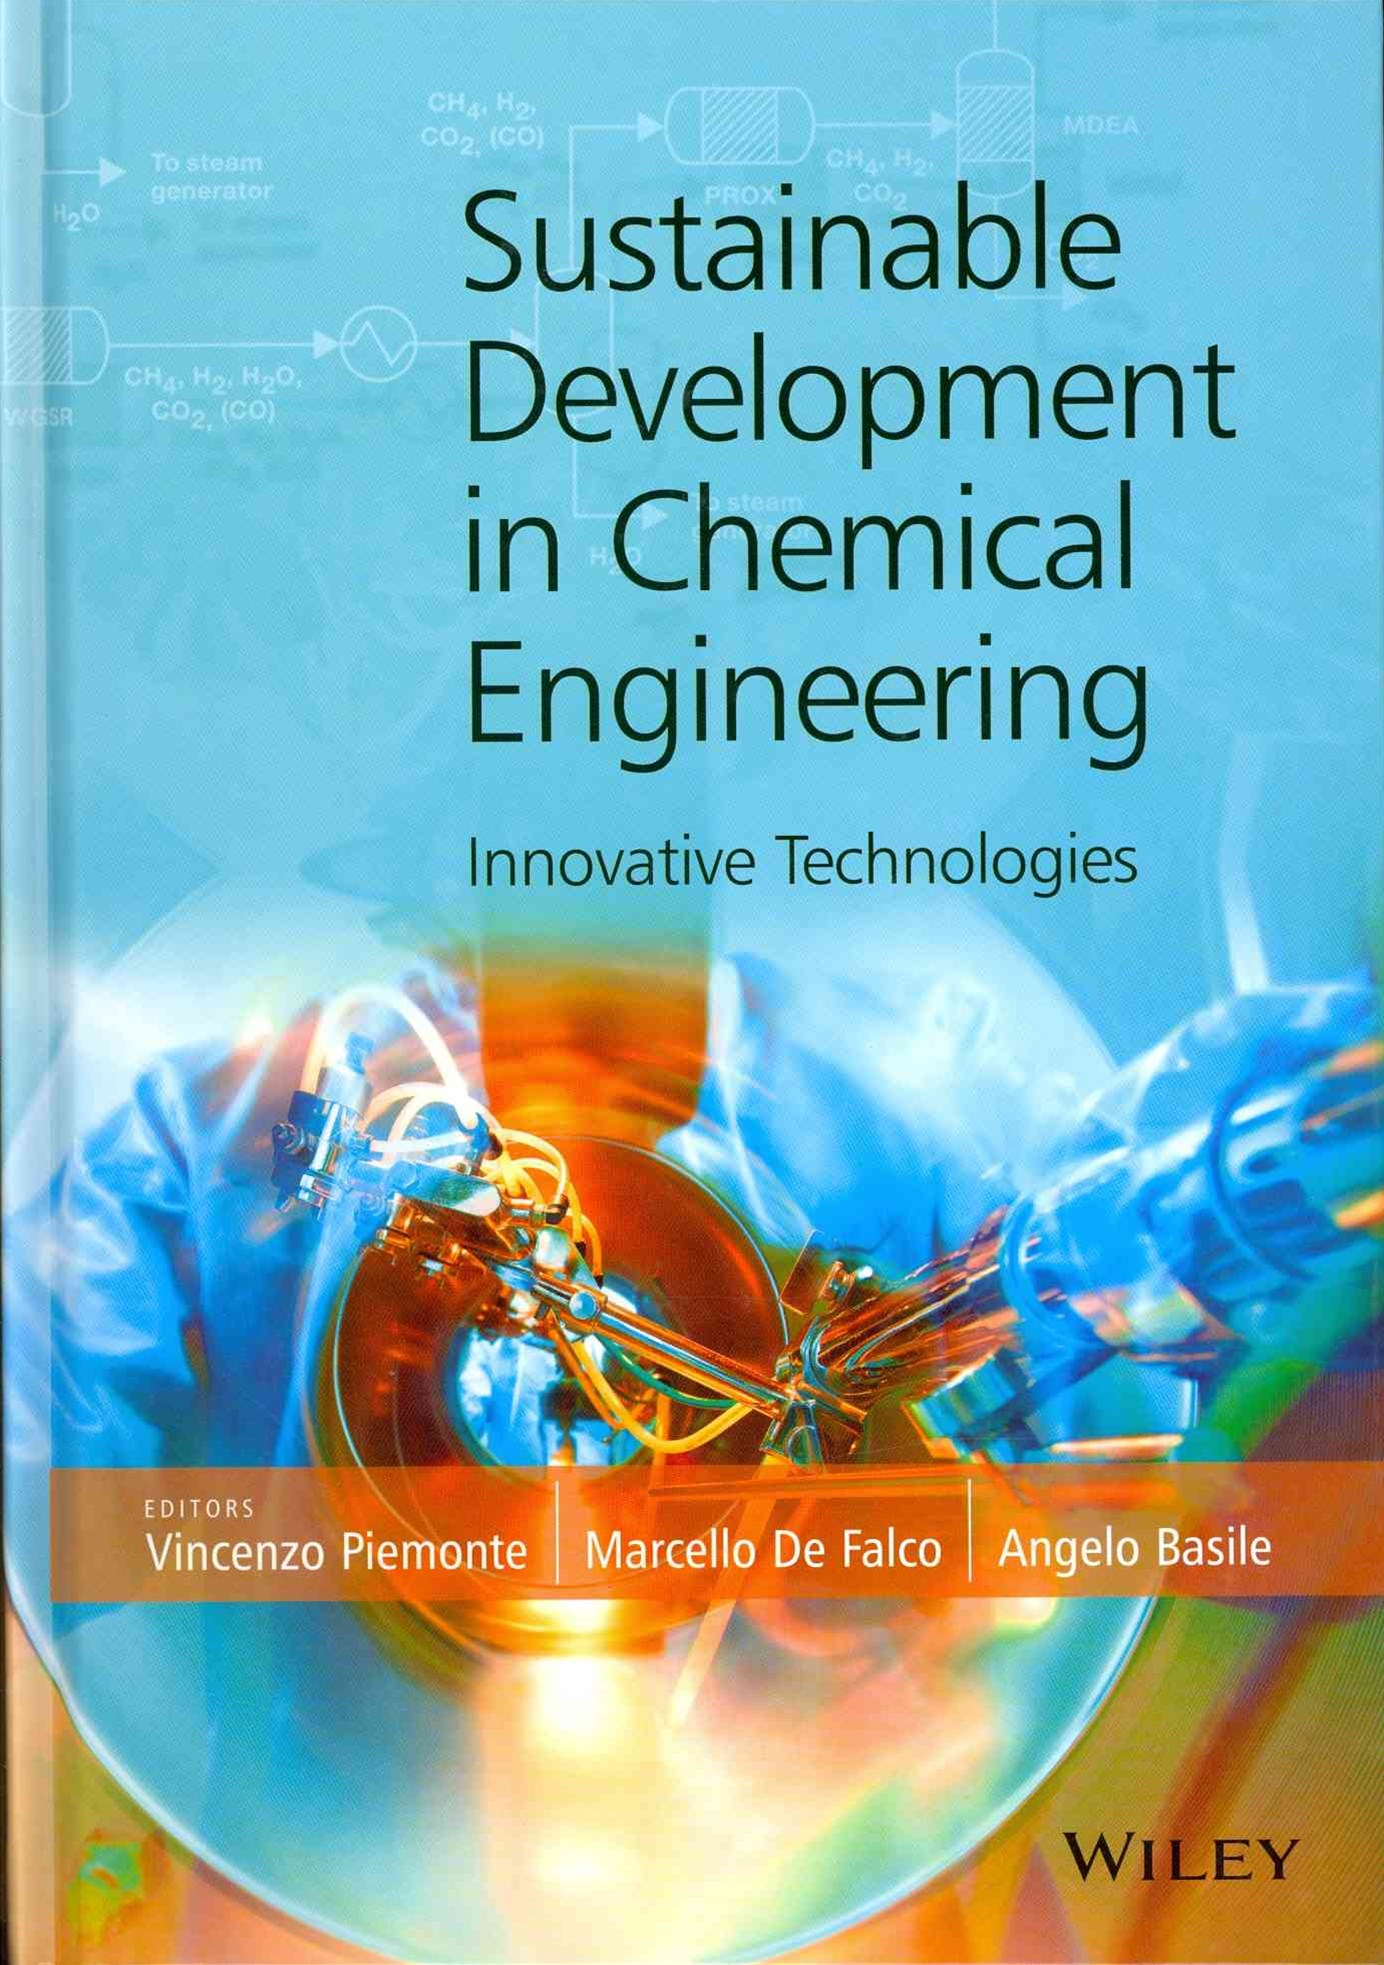 Sustainable Development in Chemical Engineering - Innovative Technologies